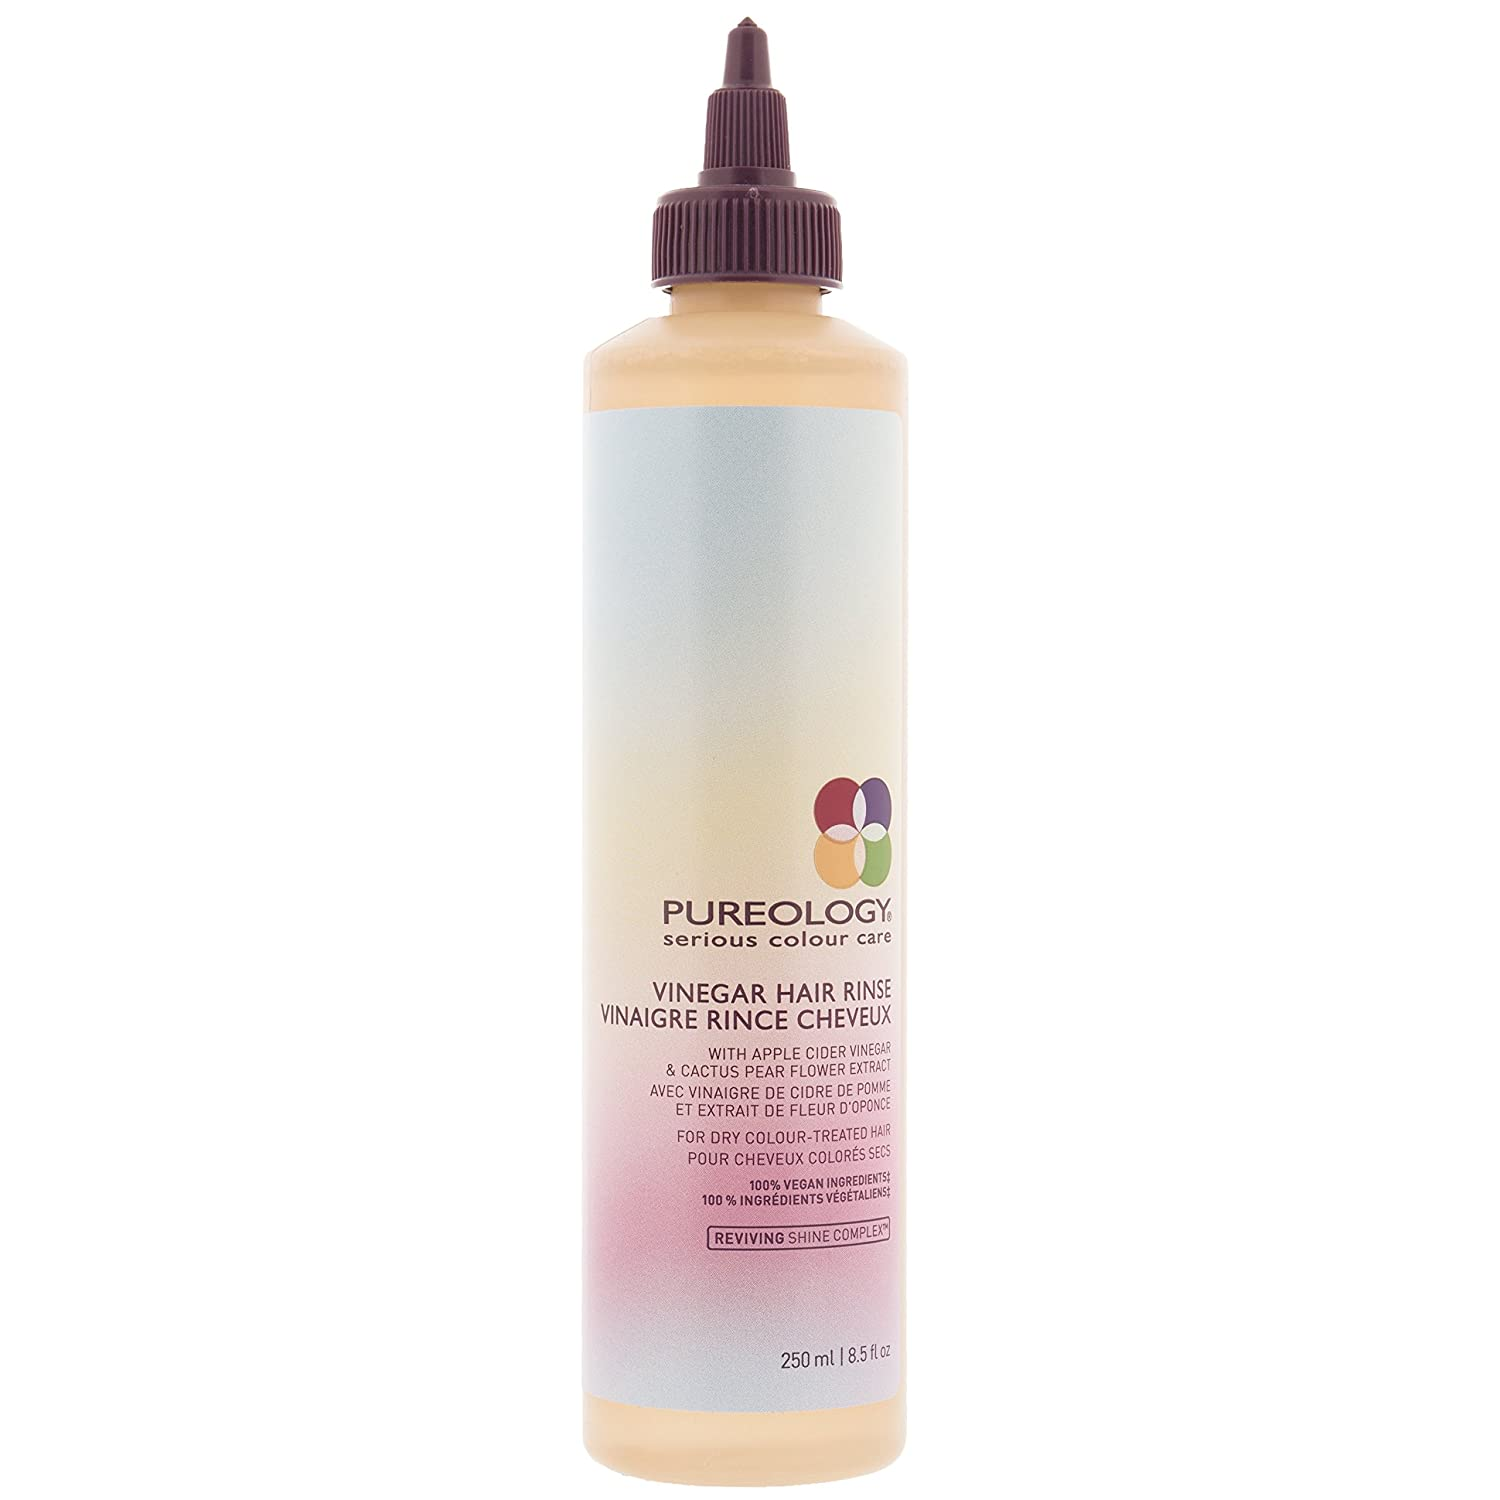 Pureology Vinegar Hair Rinse | Cleanses, Softens & Adds Shine | For Dry, Color Treated Hair | Vegan | 8.5 oz.